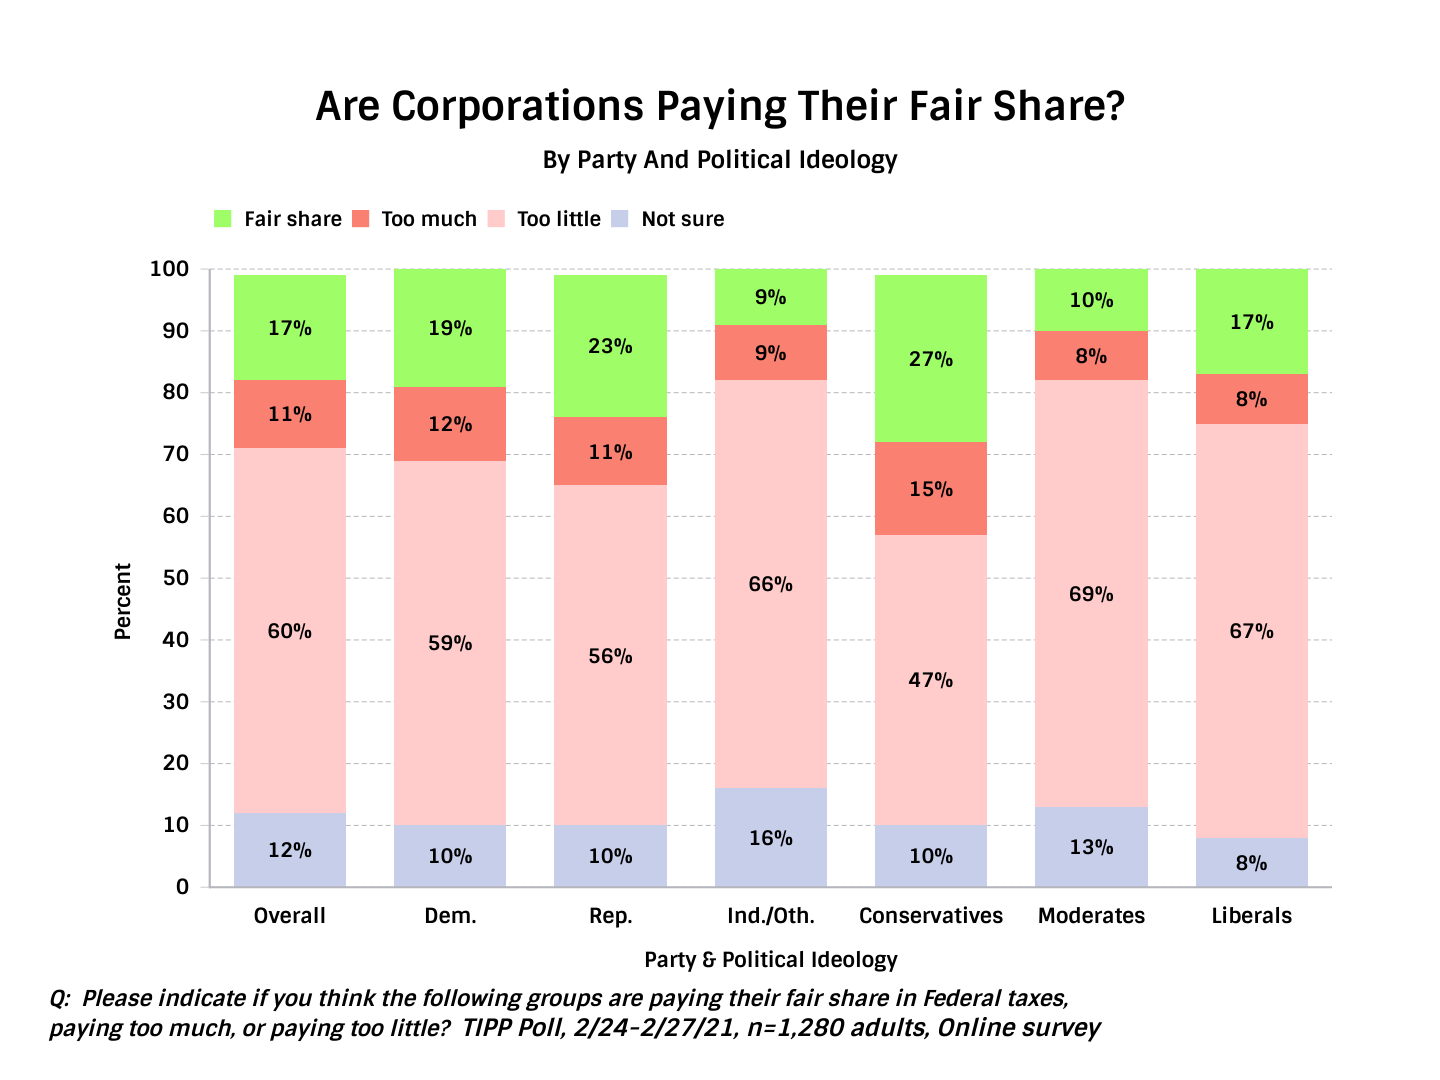 Are Corporations Paying Their Fair Share In Taxes - Chart